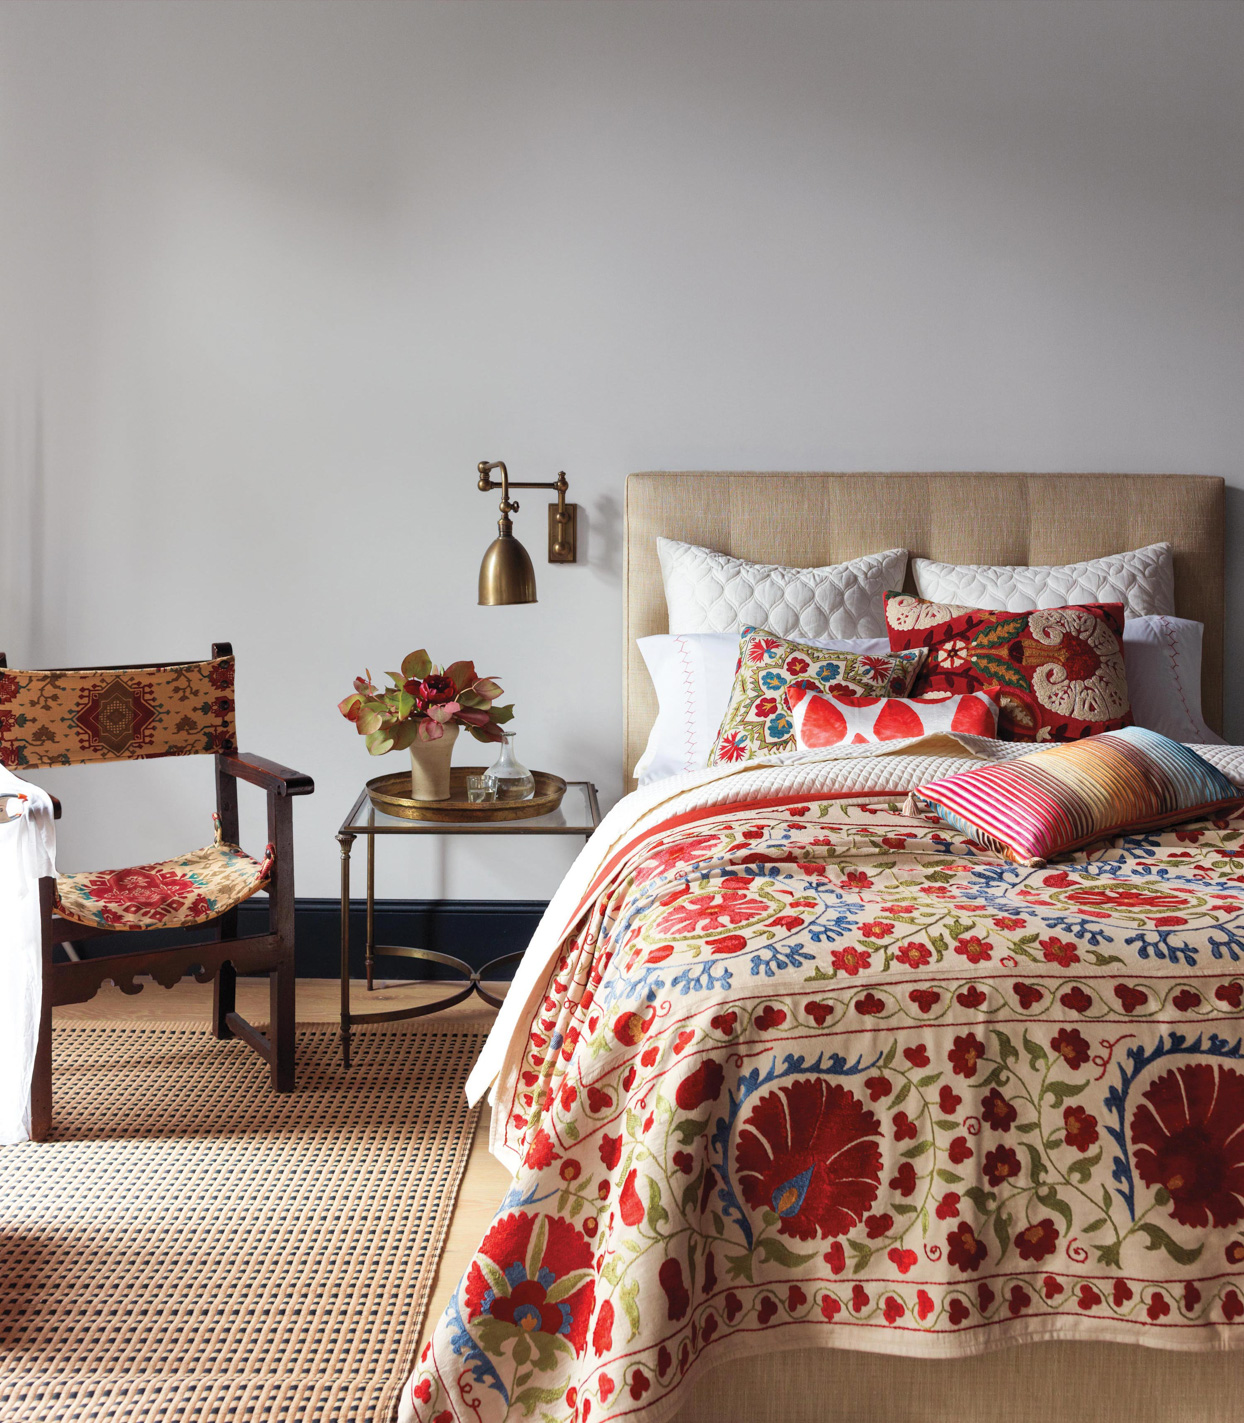 red and blue floral patterned textiles in bedroom